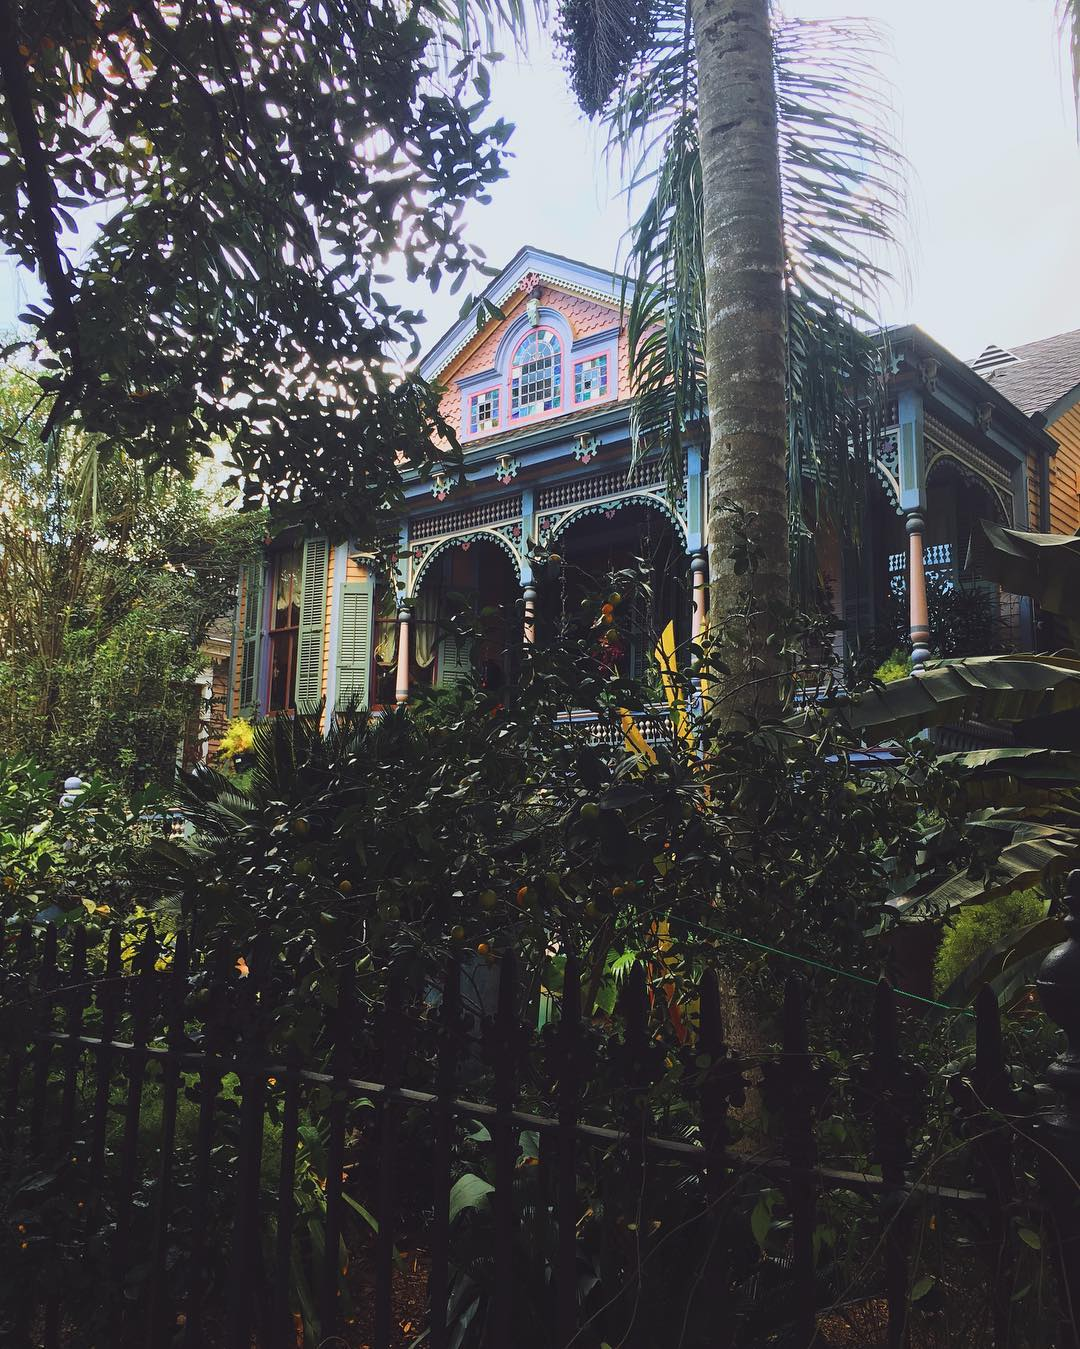 IMAGE: IG user @janetdaviephoto / POST: This house is amaaazing. Who else has seen it in New Orleans // PUBLISHED: 10.29.16